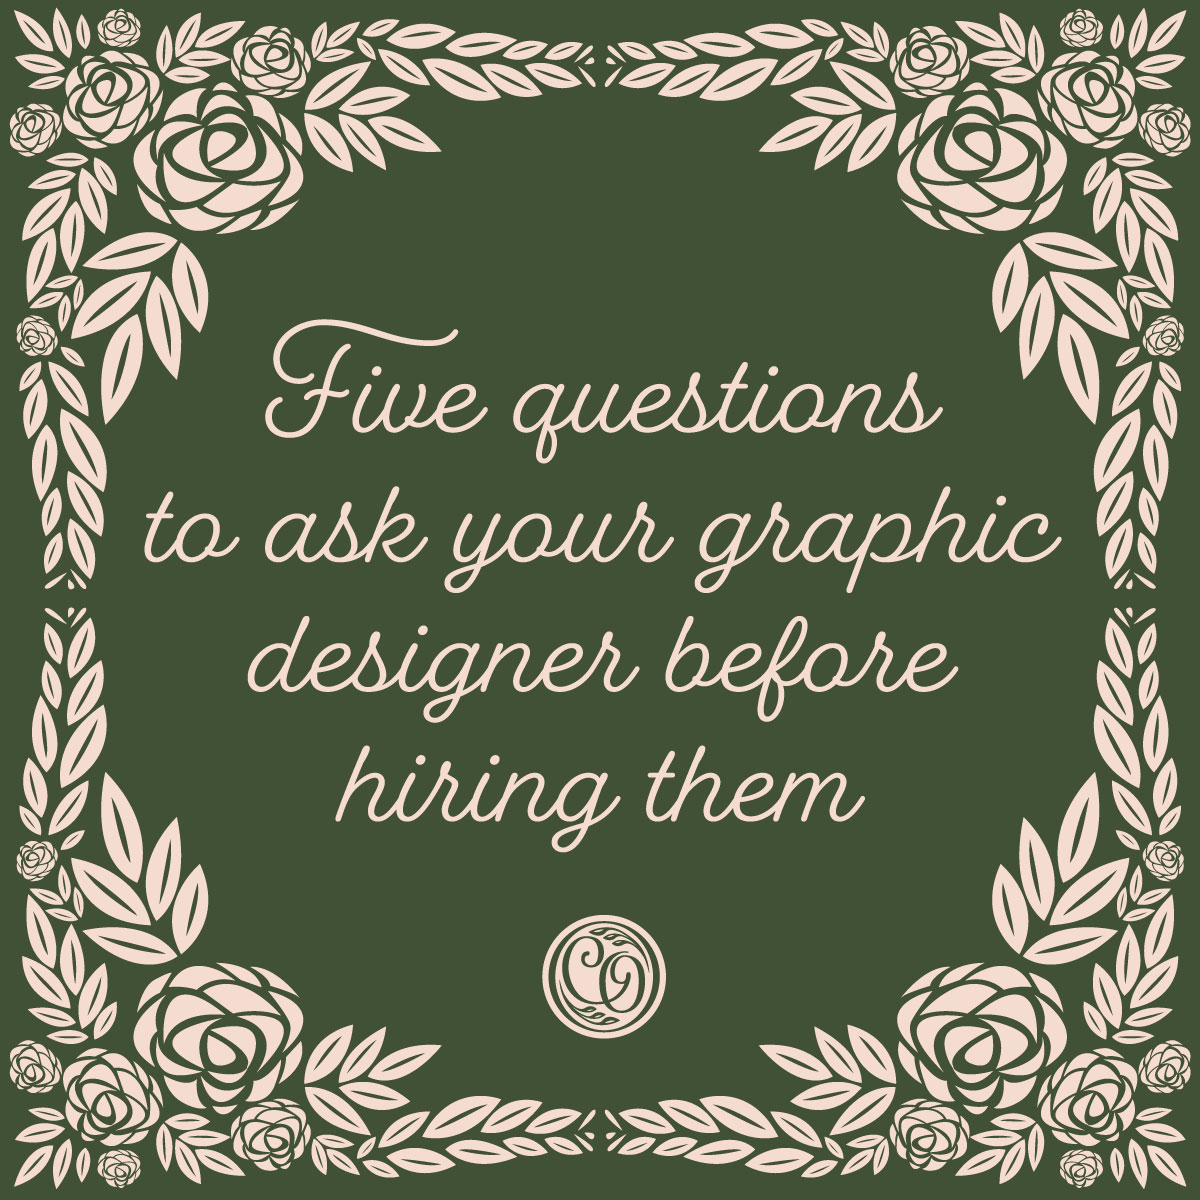 Five questions to ask a graphic designer before hiring them